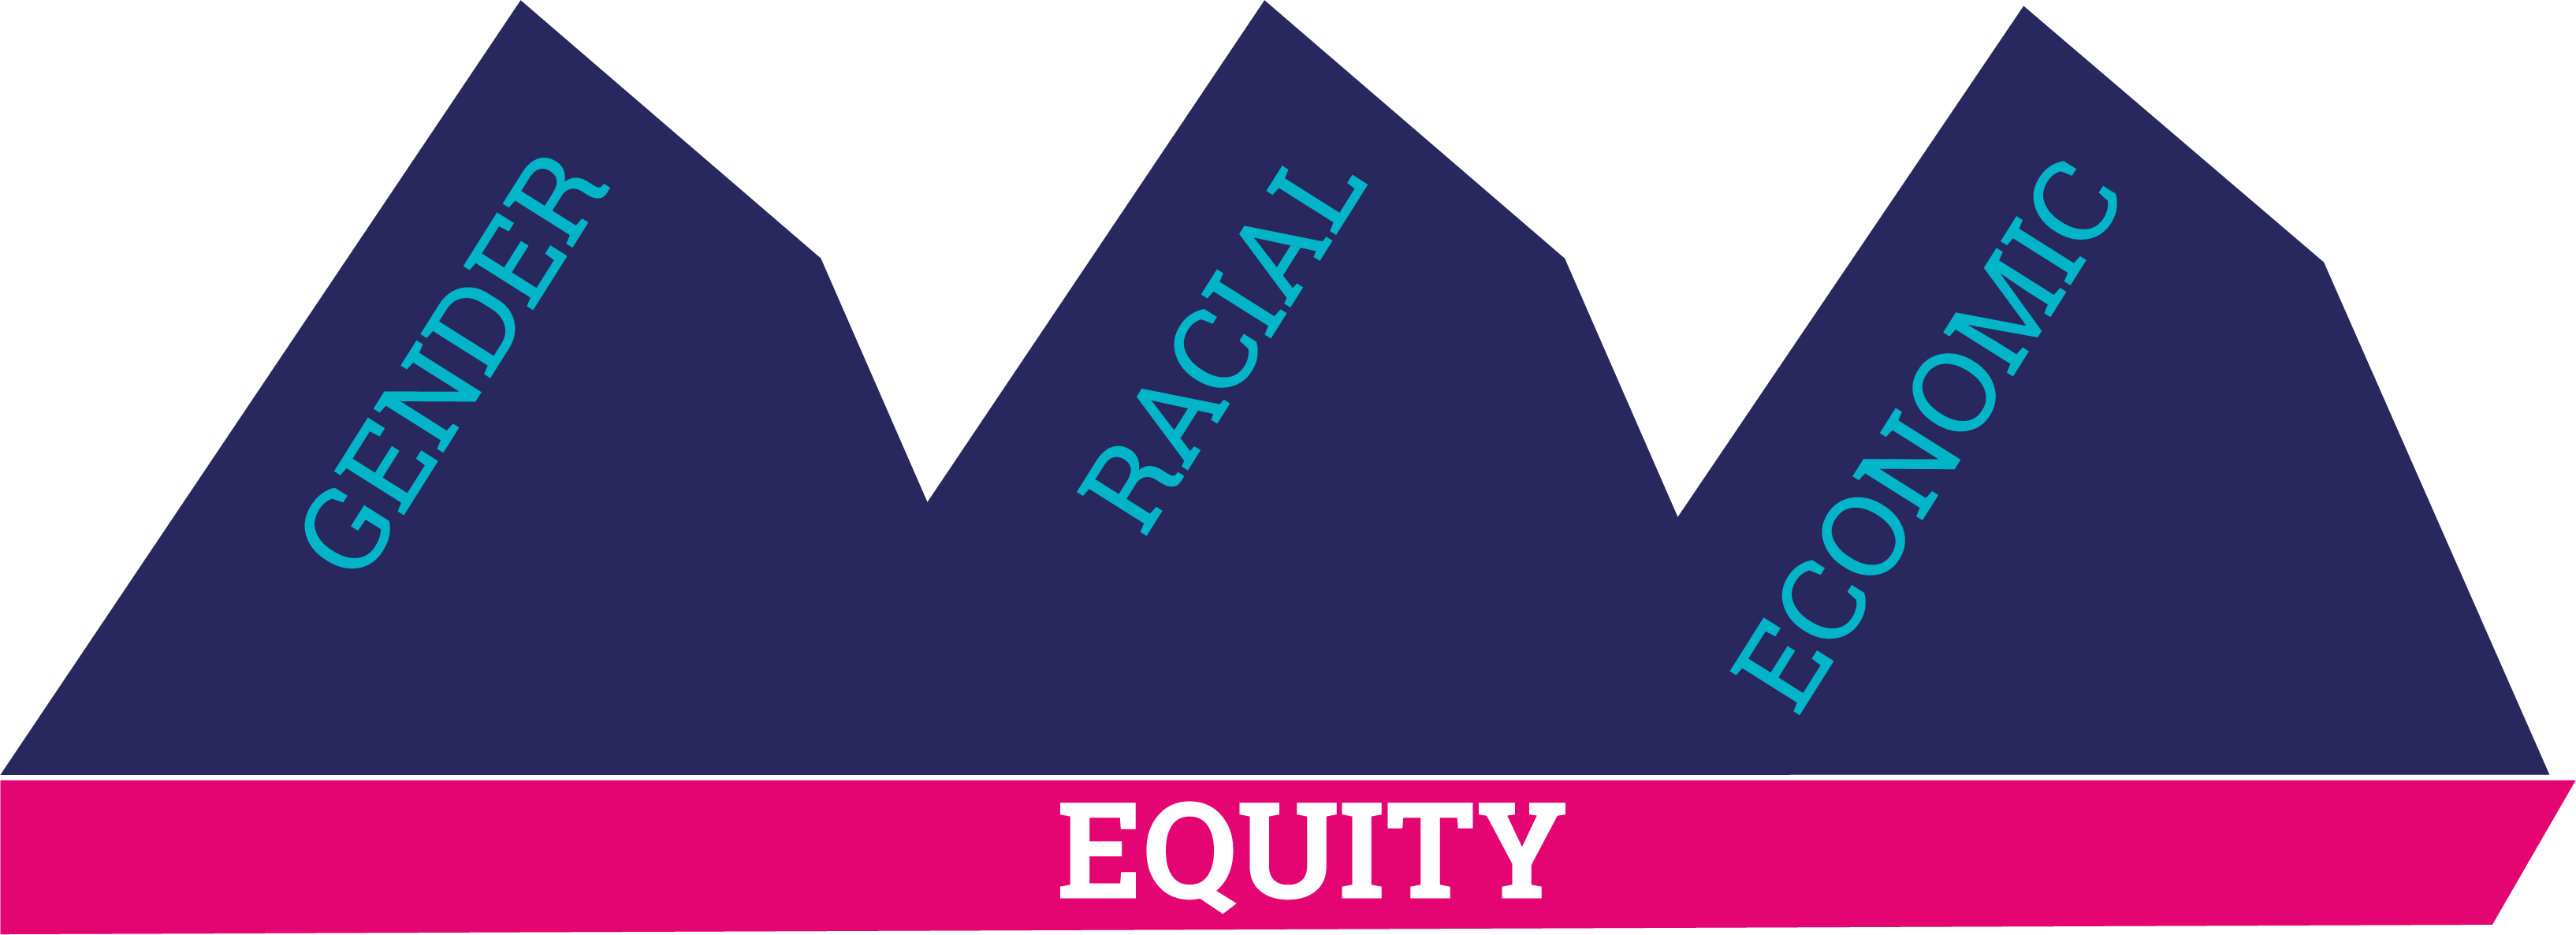 Equity Mountain Graphic depicting gender, racial, and economic equity as equal mountains from 2021 strategic framework